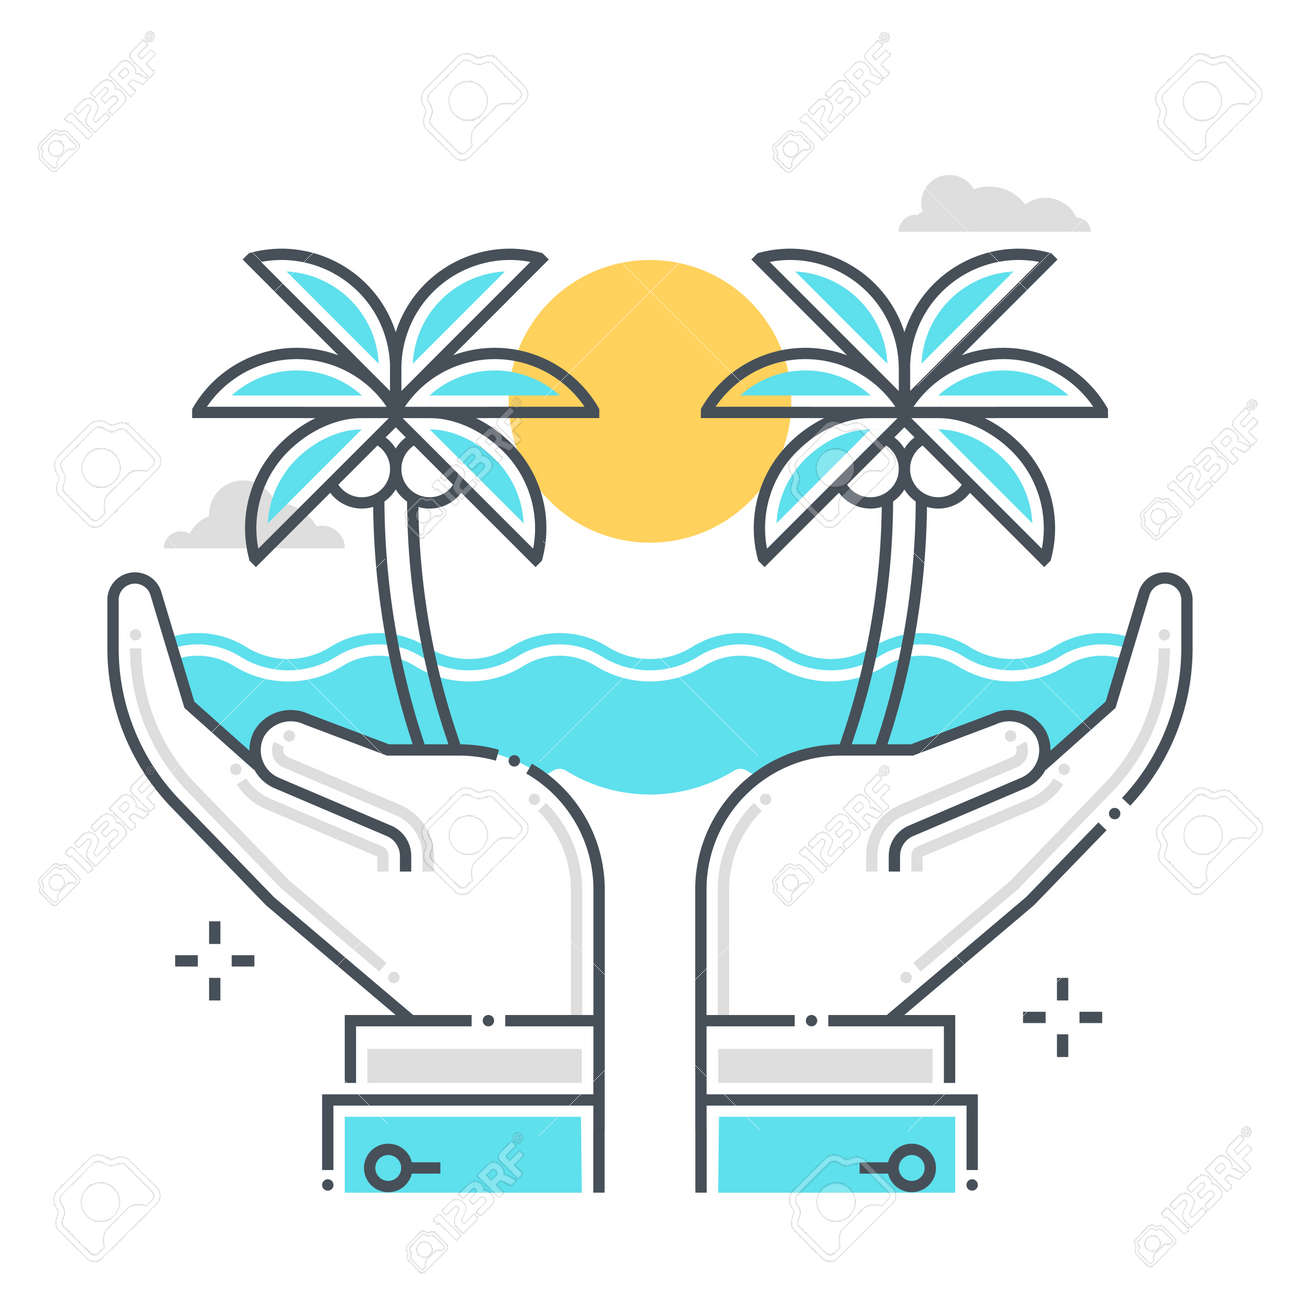 Holiday protection related color line vector icon, illustration. The icon is about assurance, retirement, life, old age, holiday, sea. The composition is infinitely scalable. - 163698047